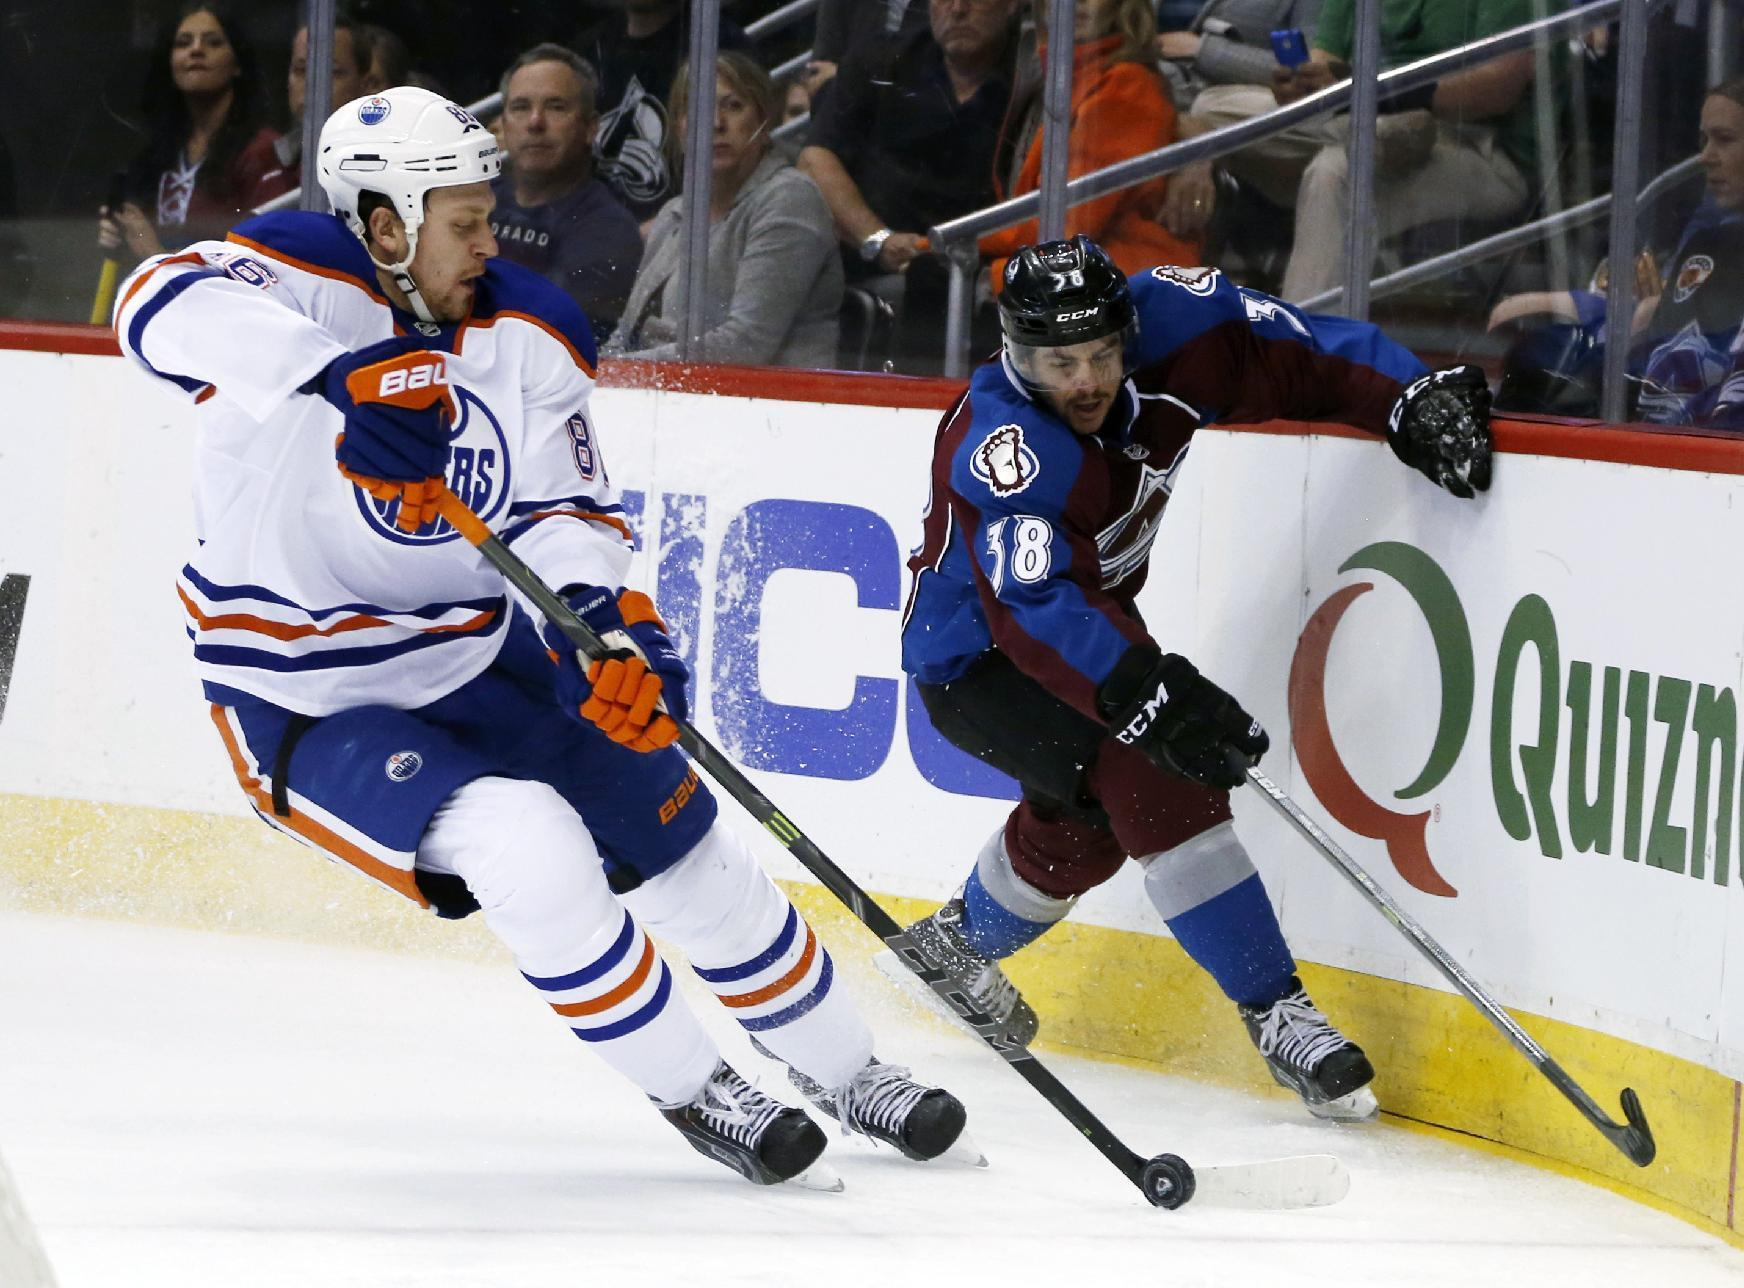 Schultz, Bachman help Oilers to 4-1 win over Avs